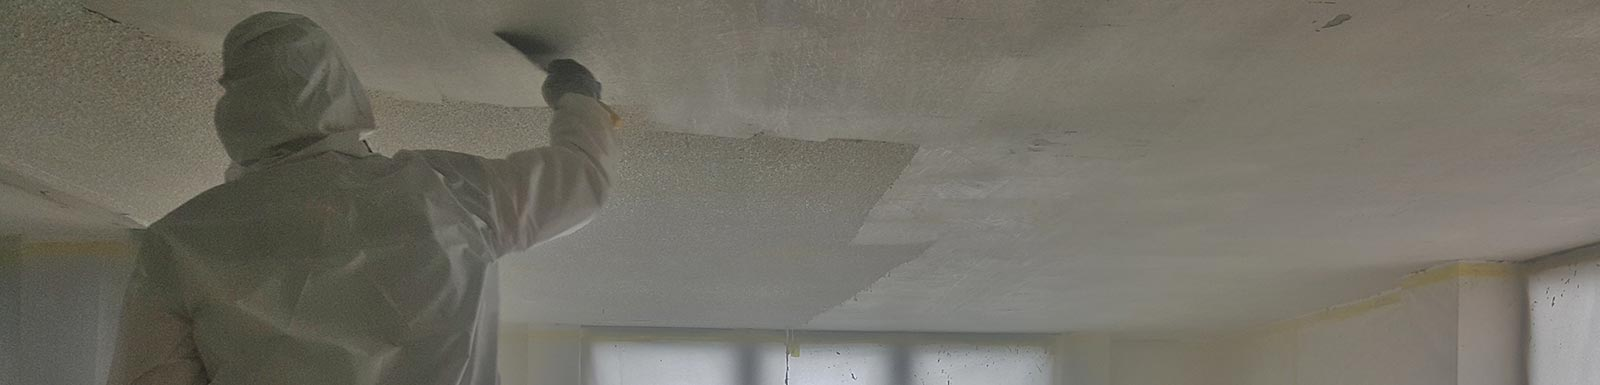 Removing Asbestos Popcorn Ceiling in Palm Beach